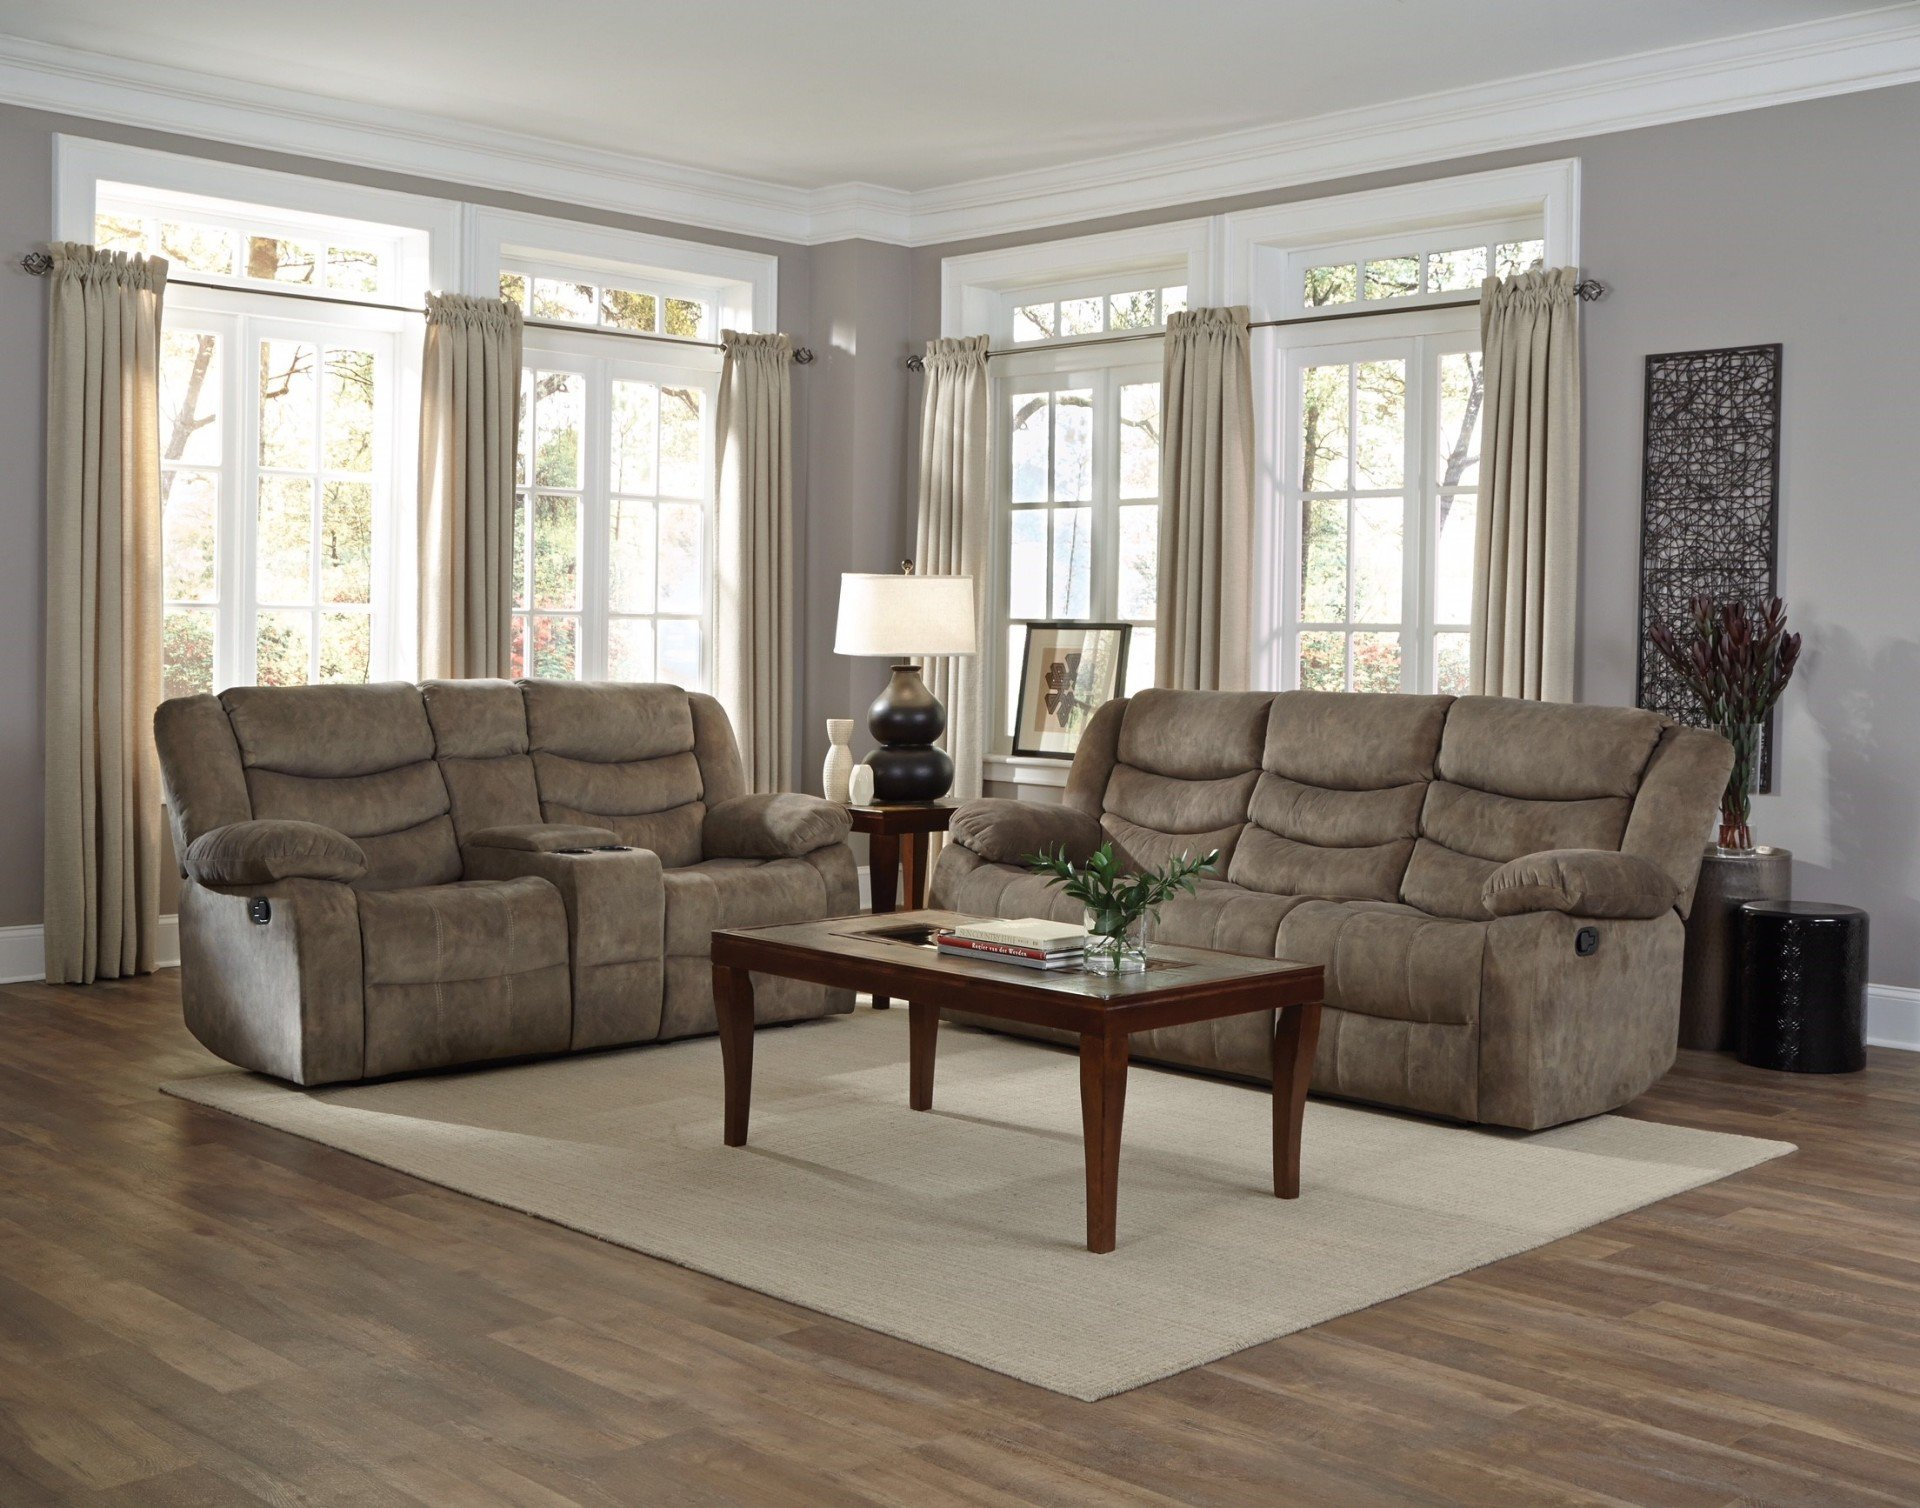 and my sets house best picture cheap heaven for furniture of modern living room is